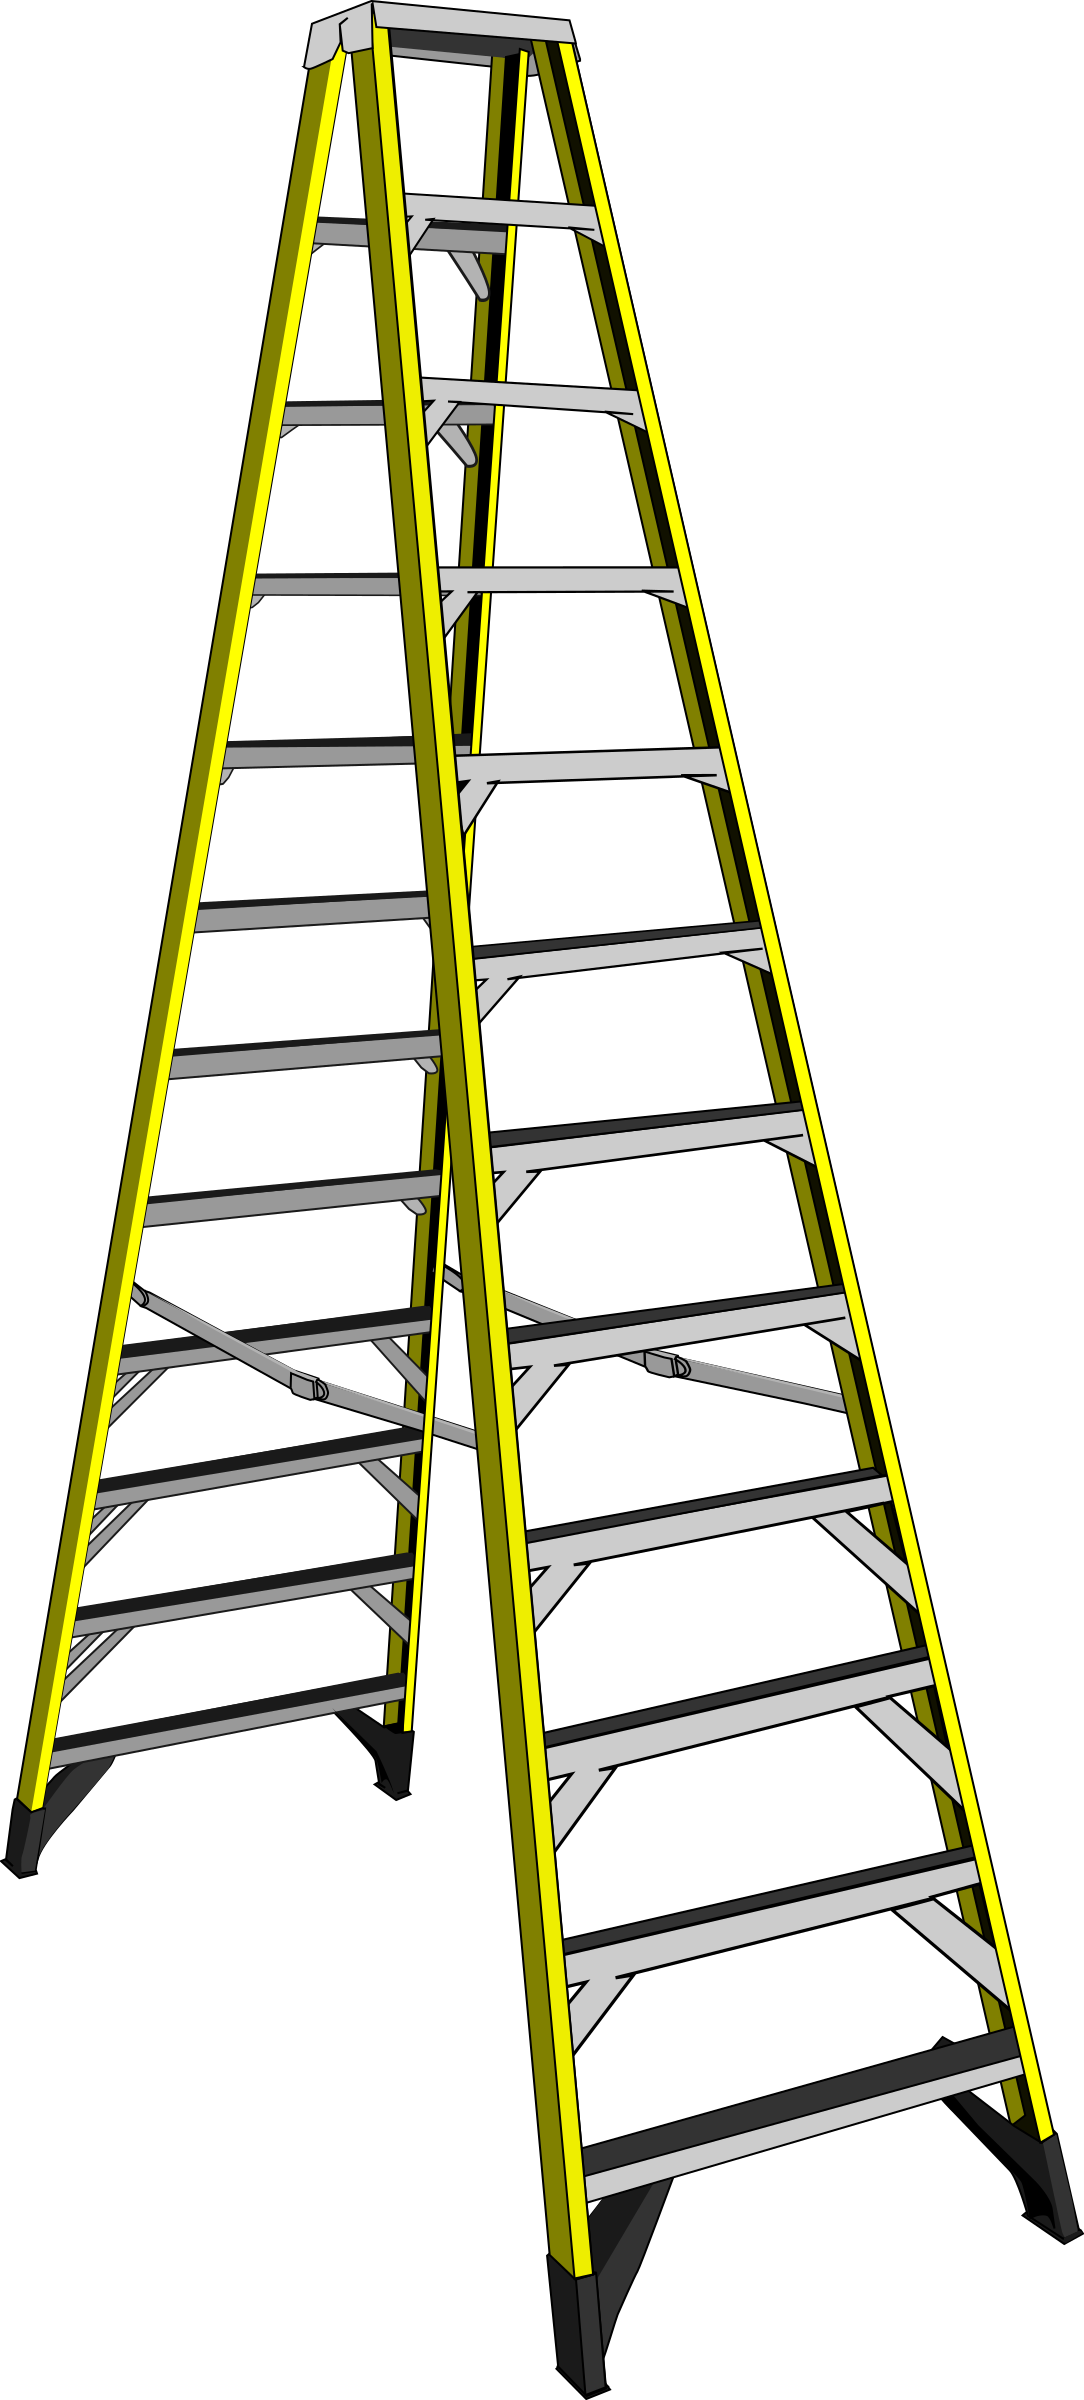 Ladder clipart tall ladder. Group large yellow